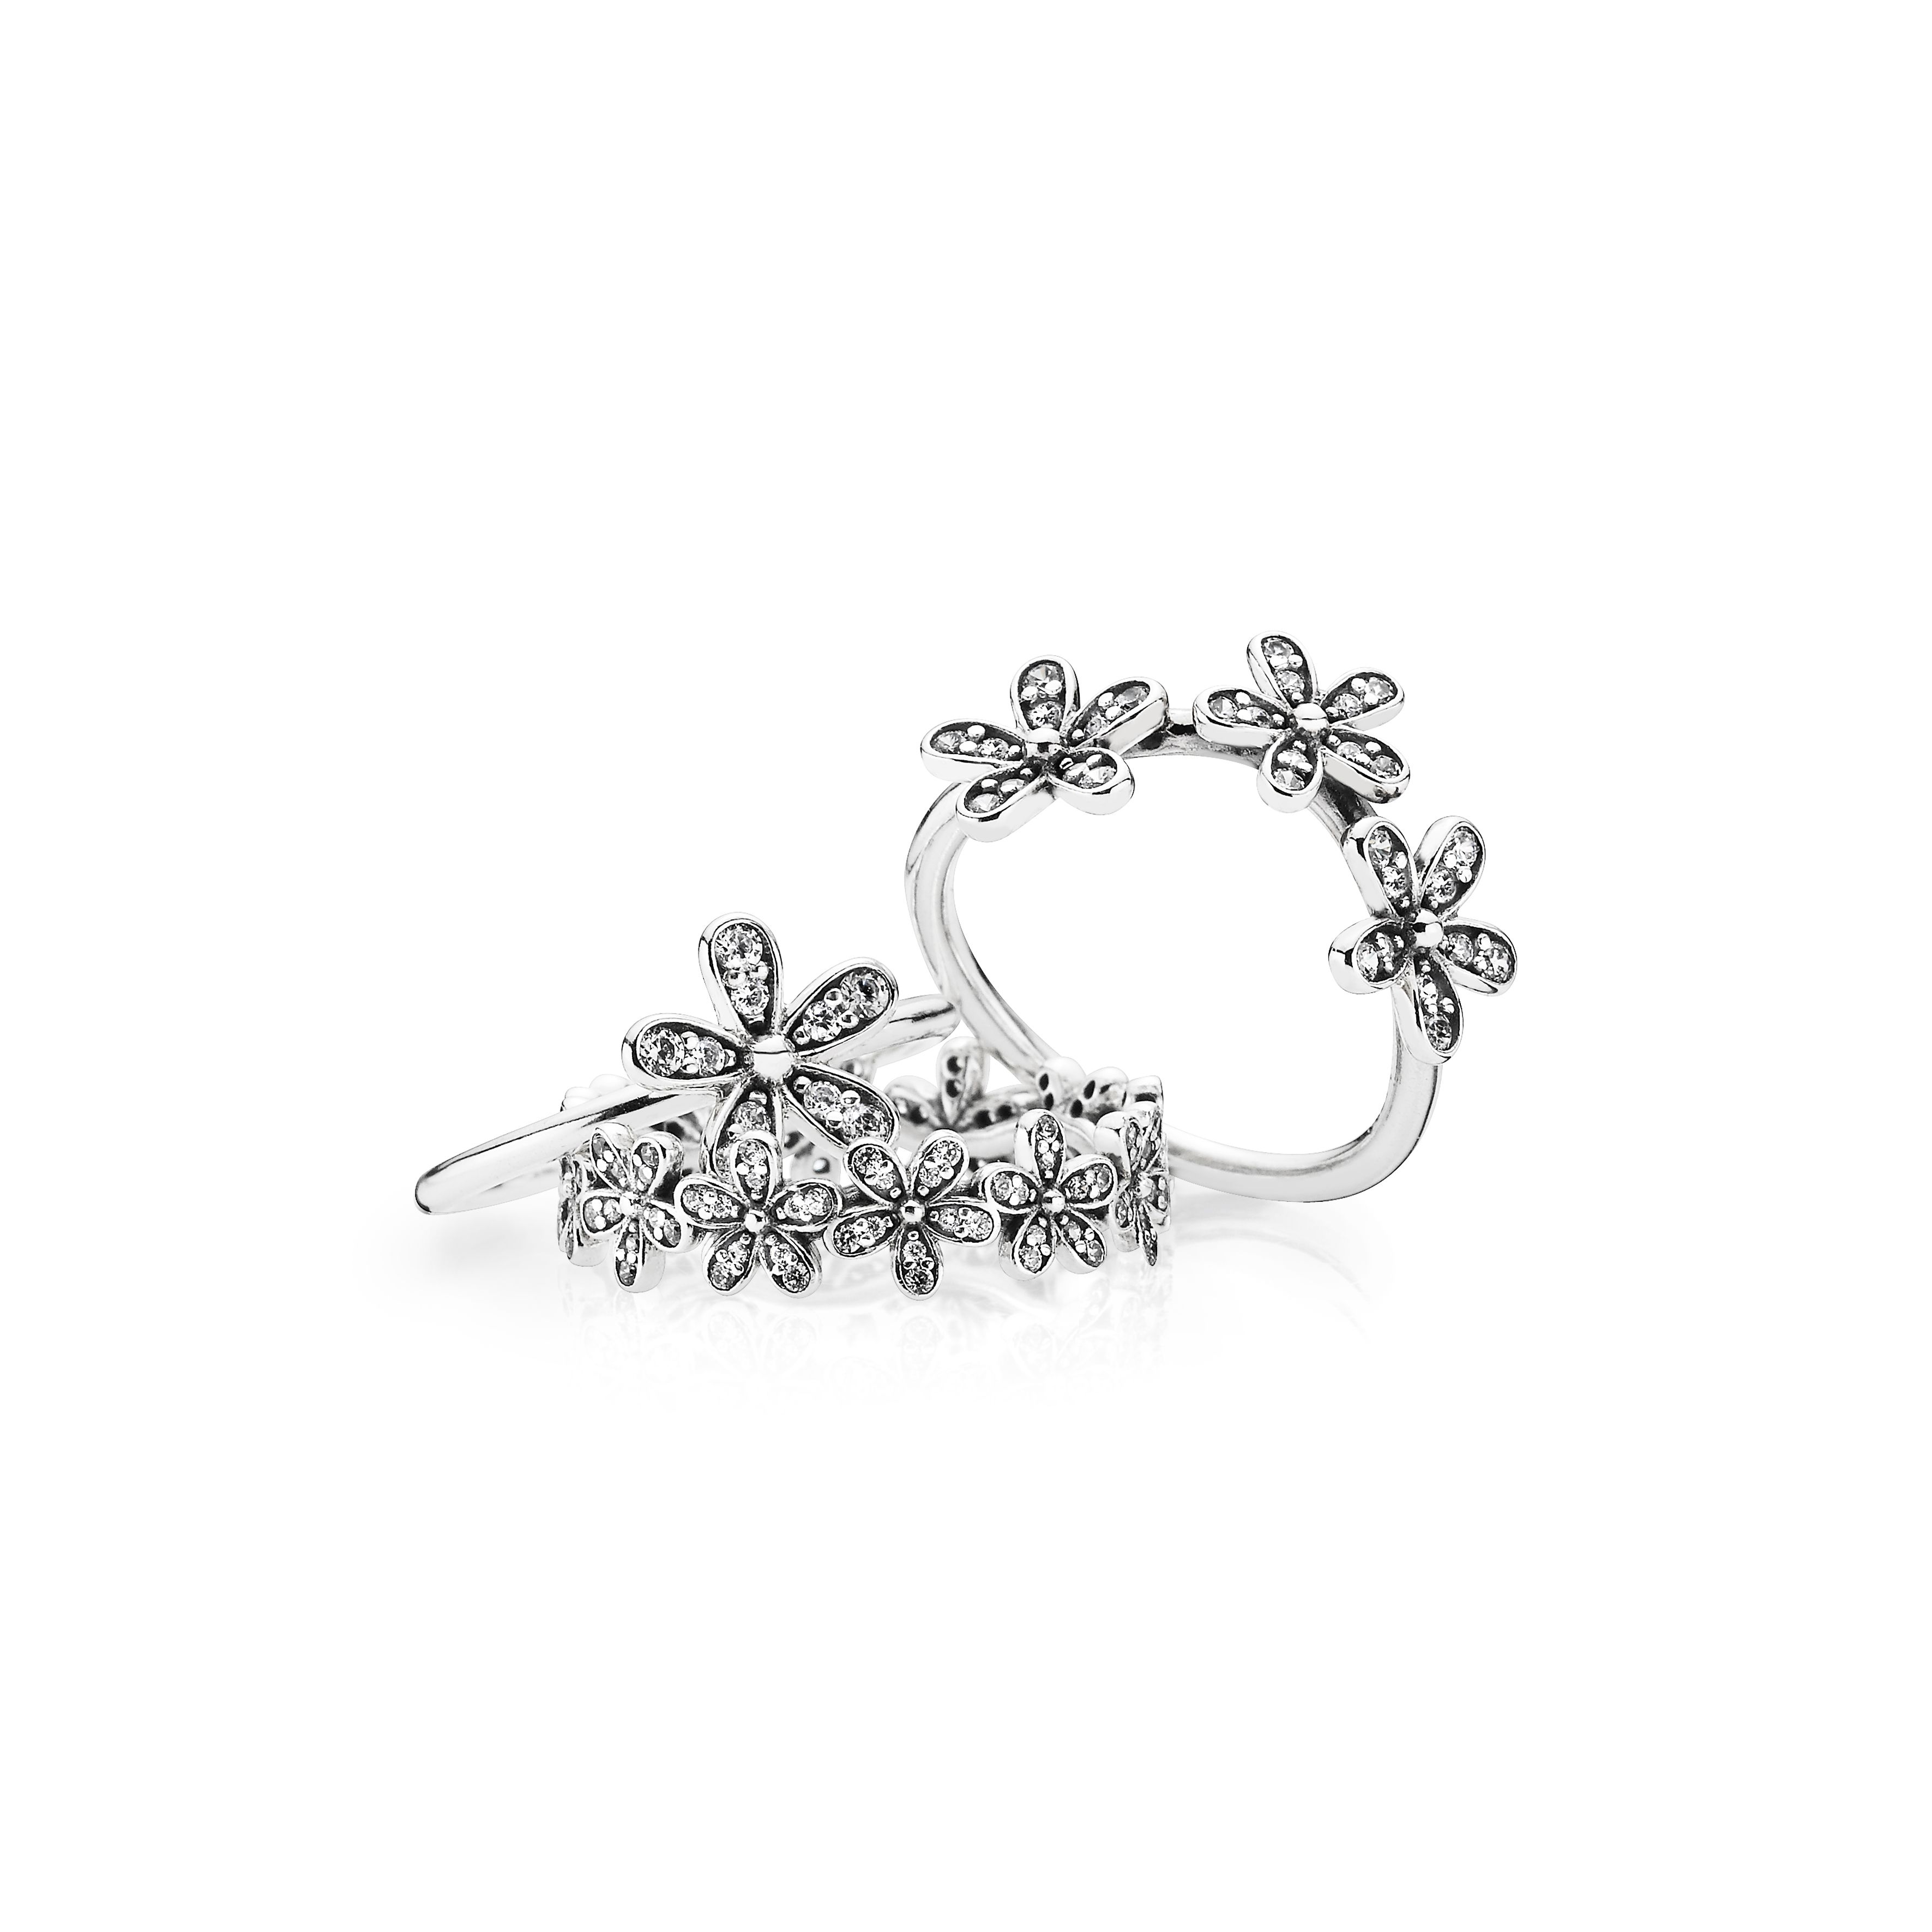 96041fe5d Dazzling daisy rings from PANDORA's Spring collection 2015. Perfect for  stacking. #PANDORAring